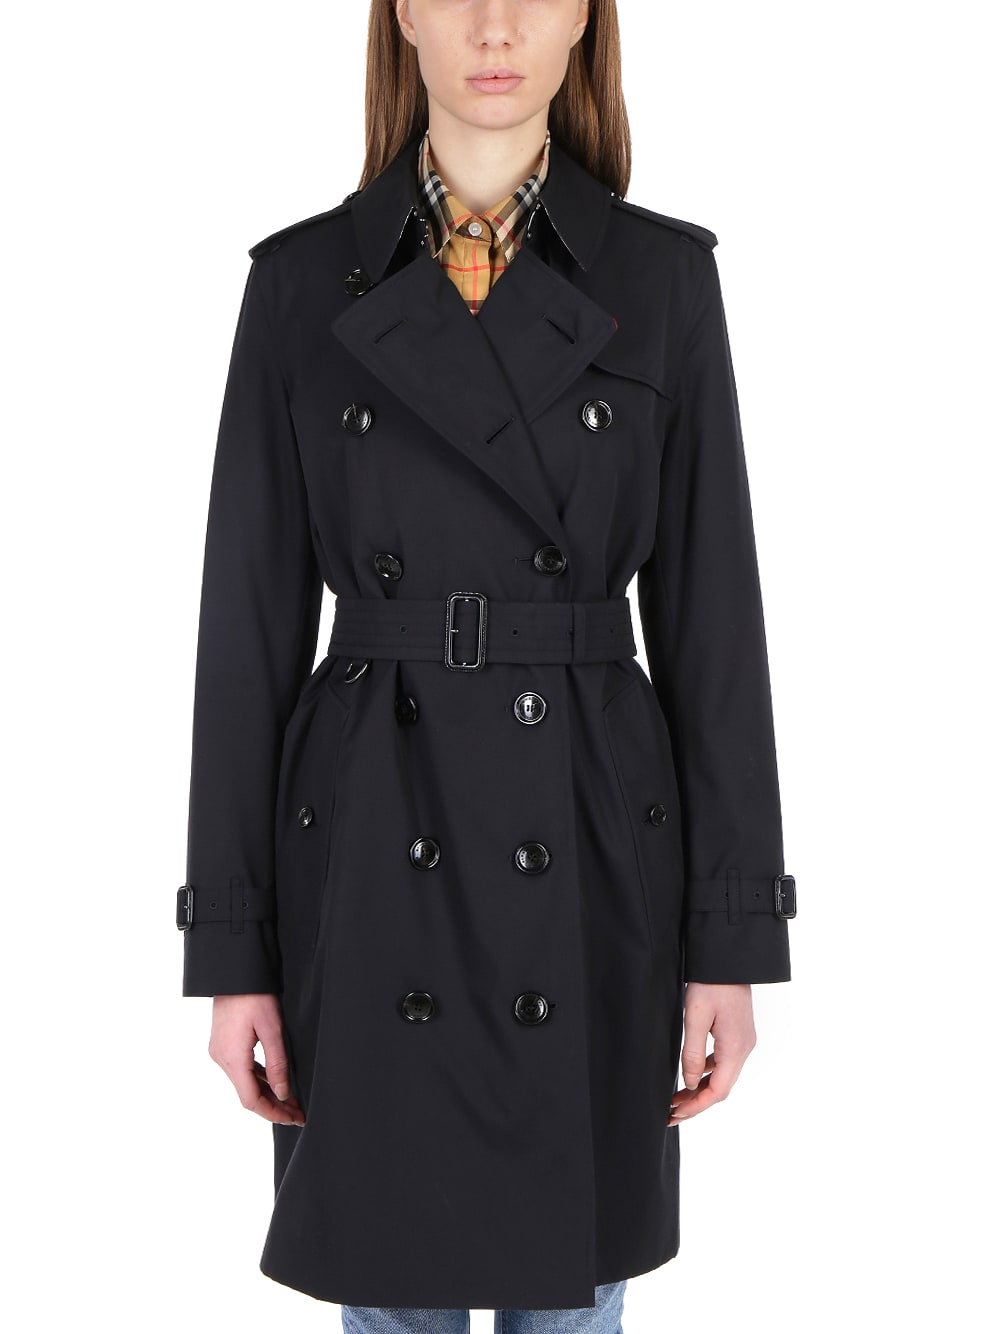 Burberry - Kensington Trench